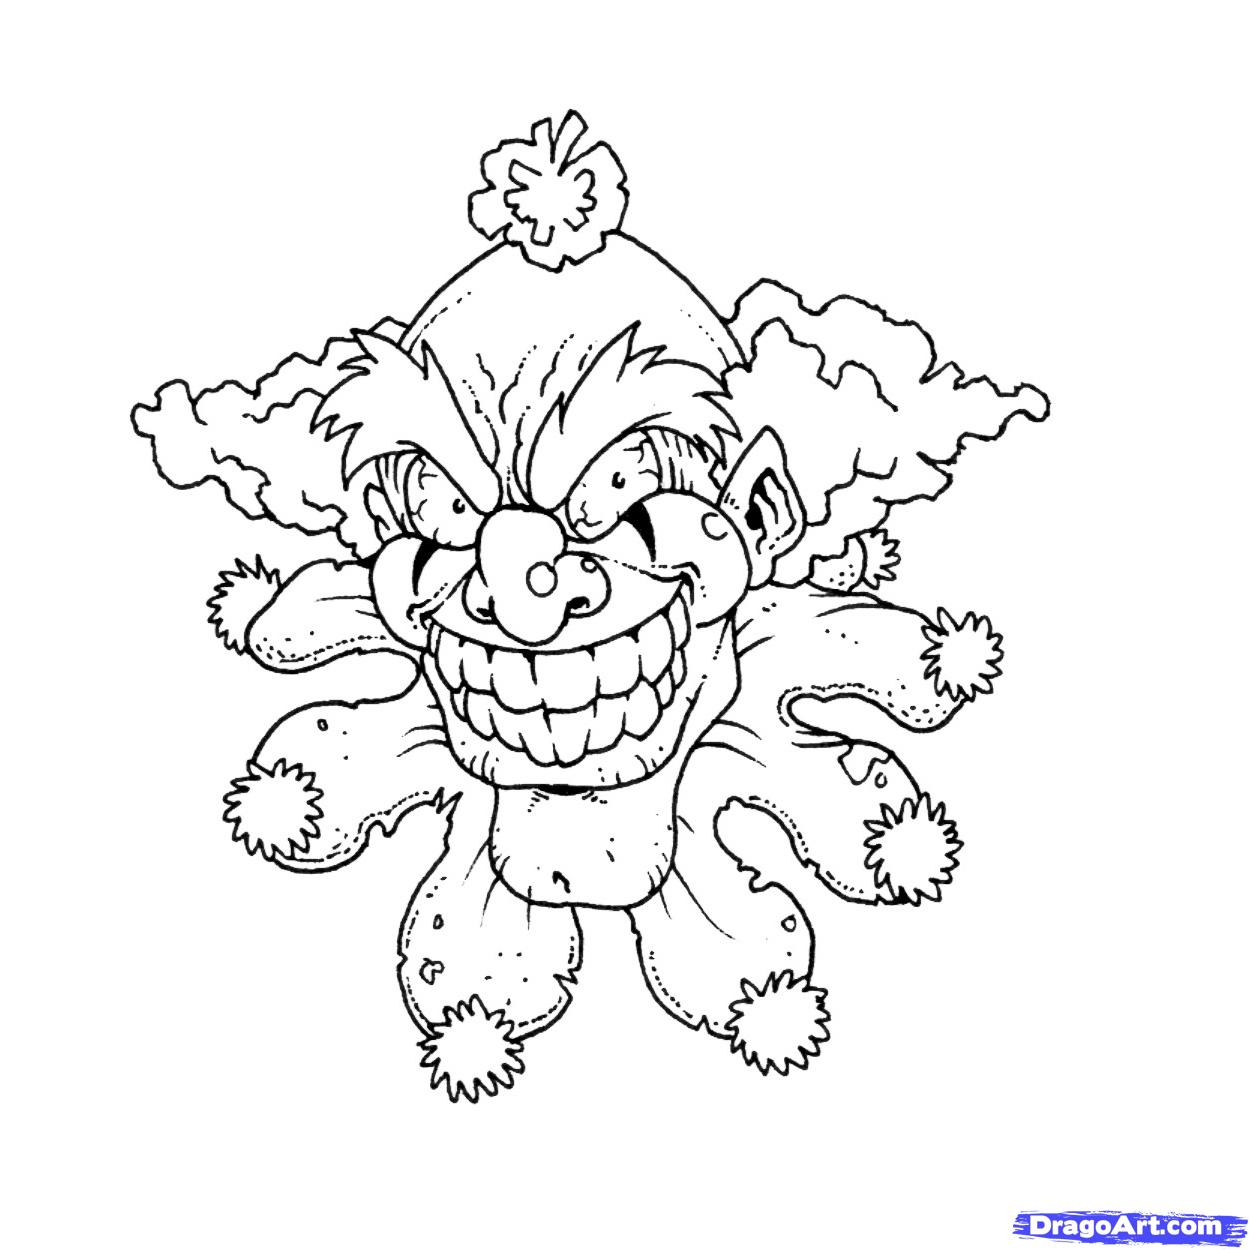 Scary Clown Printable Coloring